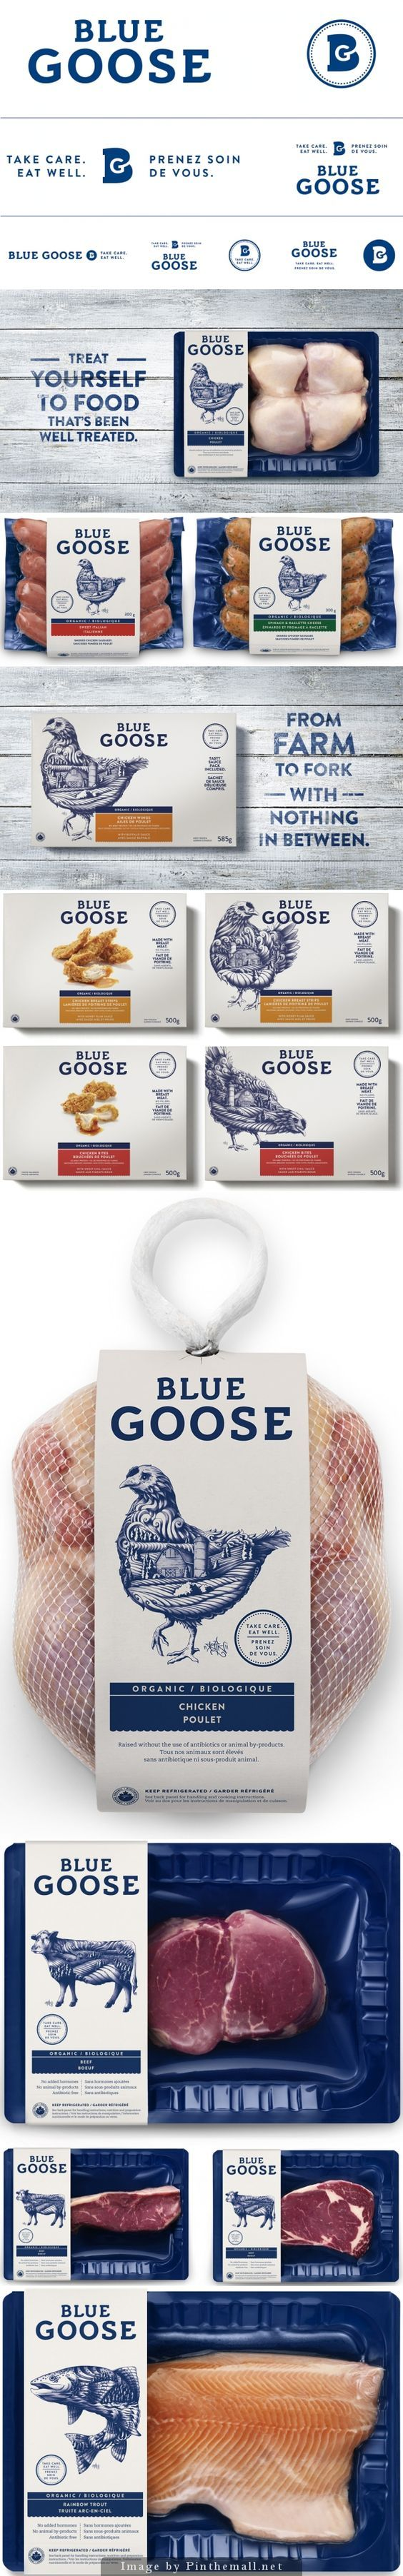 Blue Goose Pure Foods designed by Sid Lee #packaging #design: